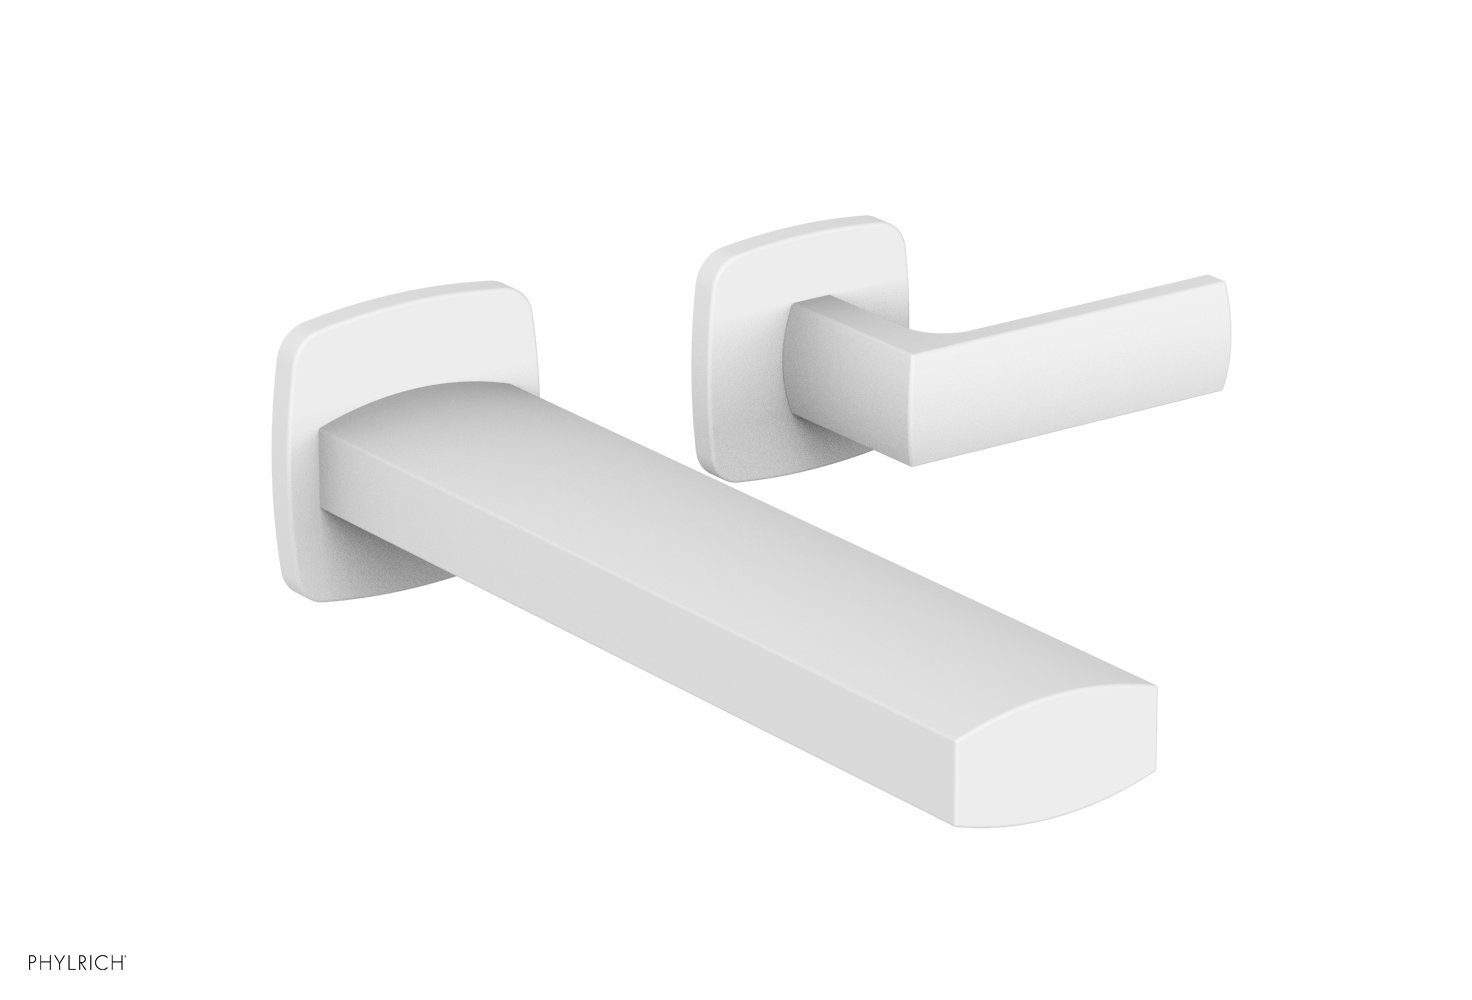 Phylrich 181-16-050 RADI Single Handle Wall Lavatory Set - Lever Handles - Satin White